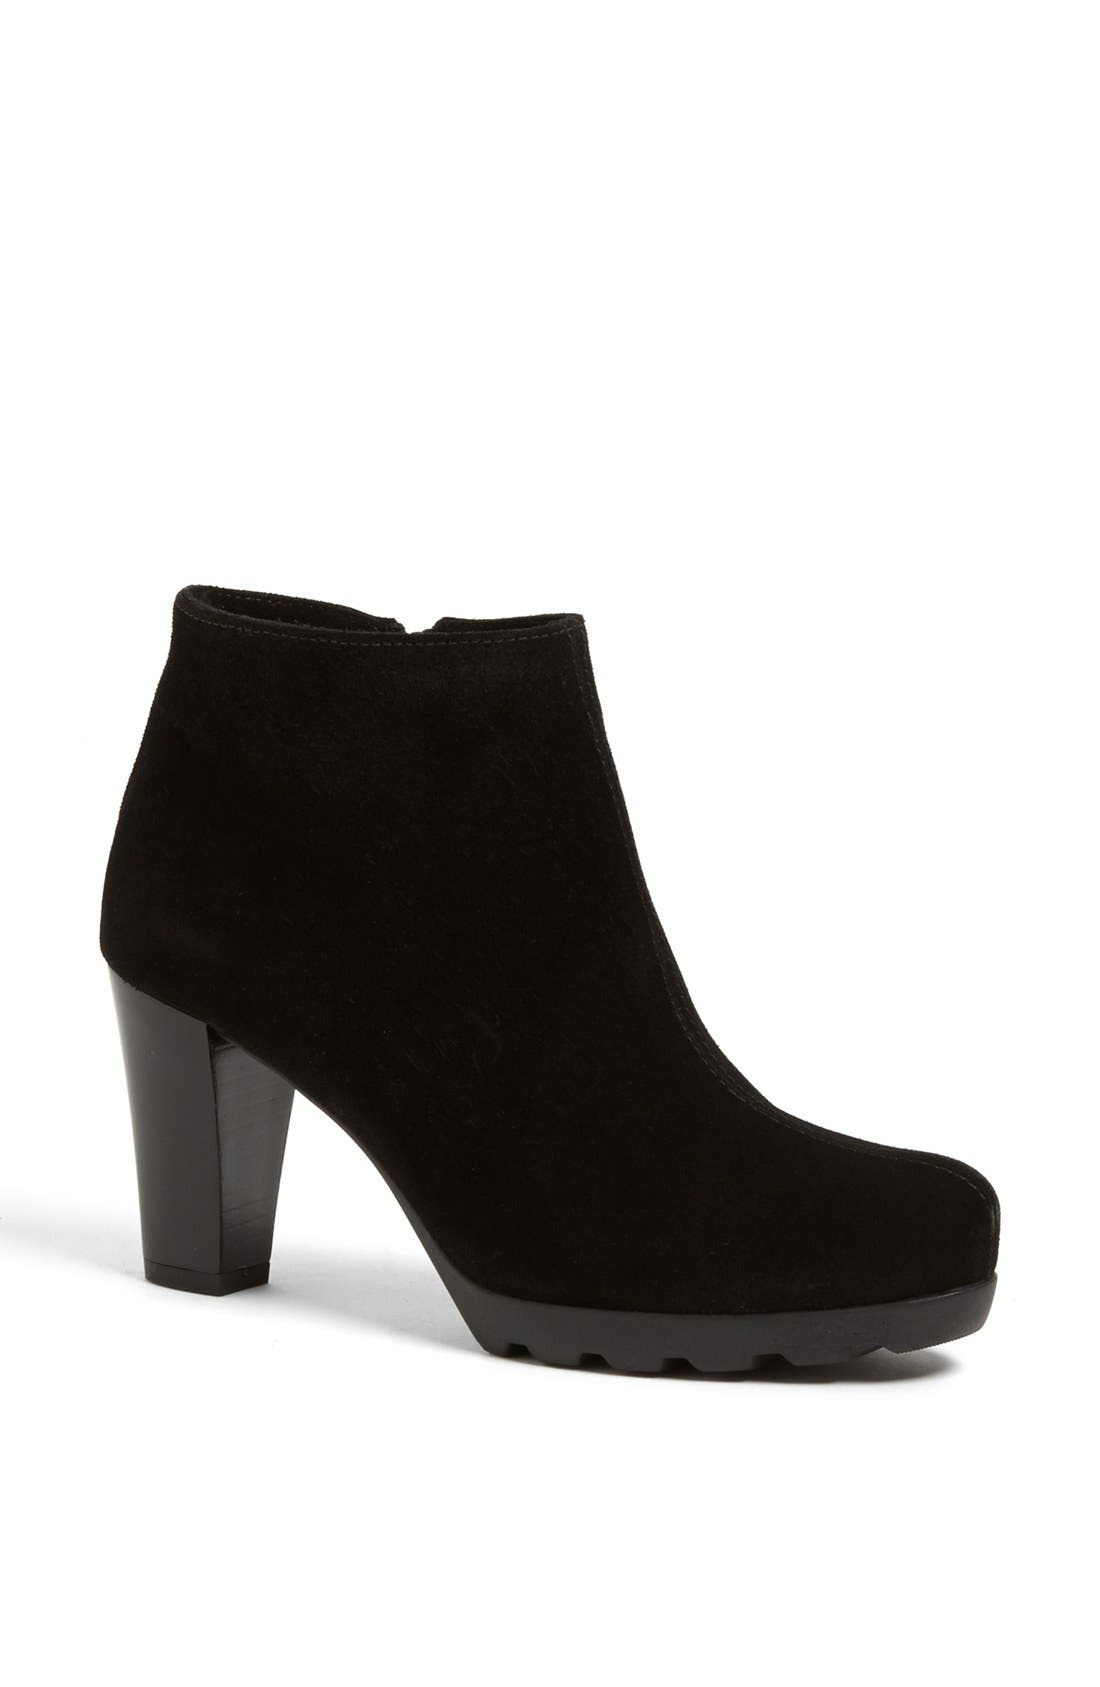 Main Image - La Canadienne 'Malin' Waterproof Bootie